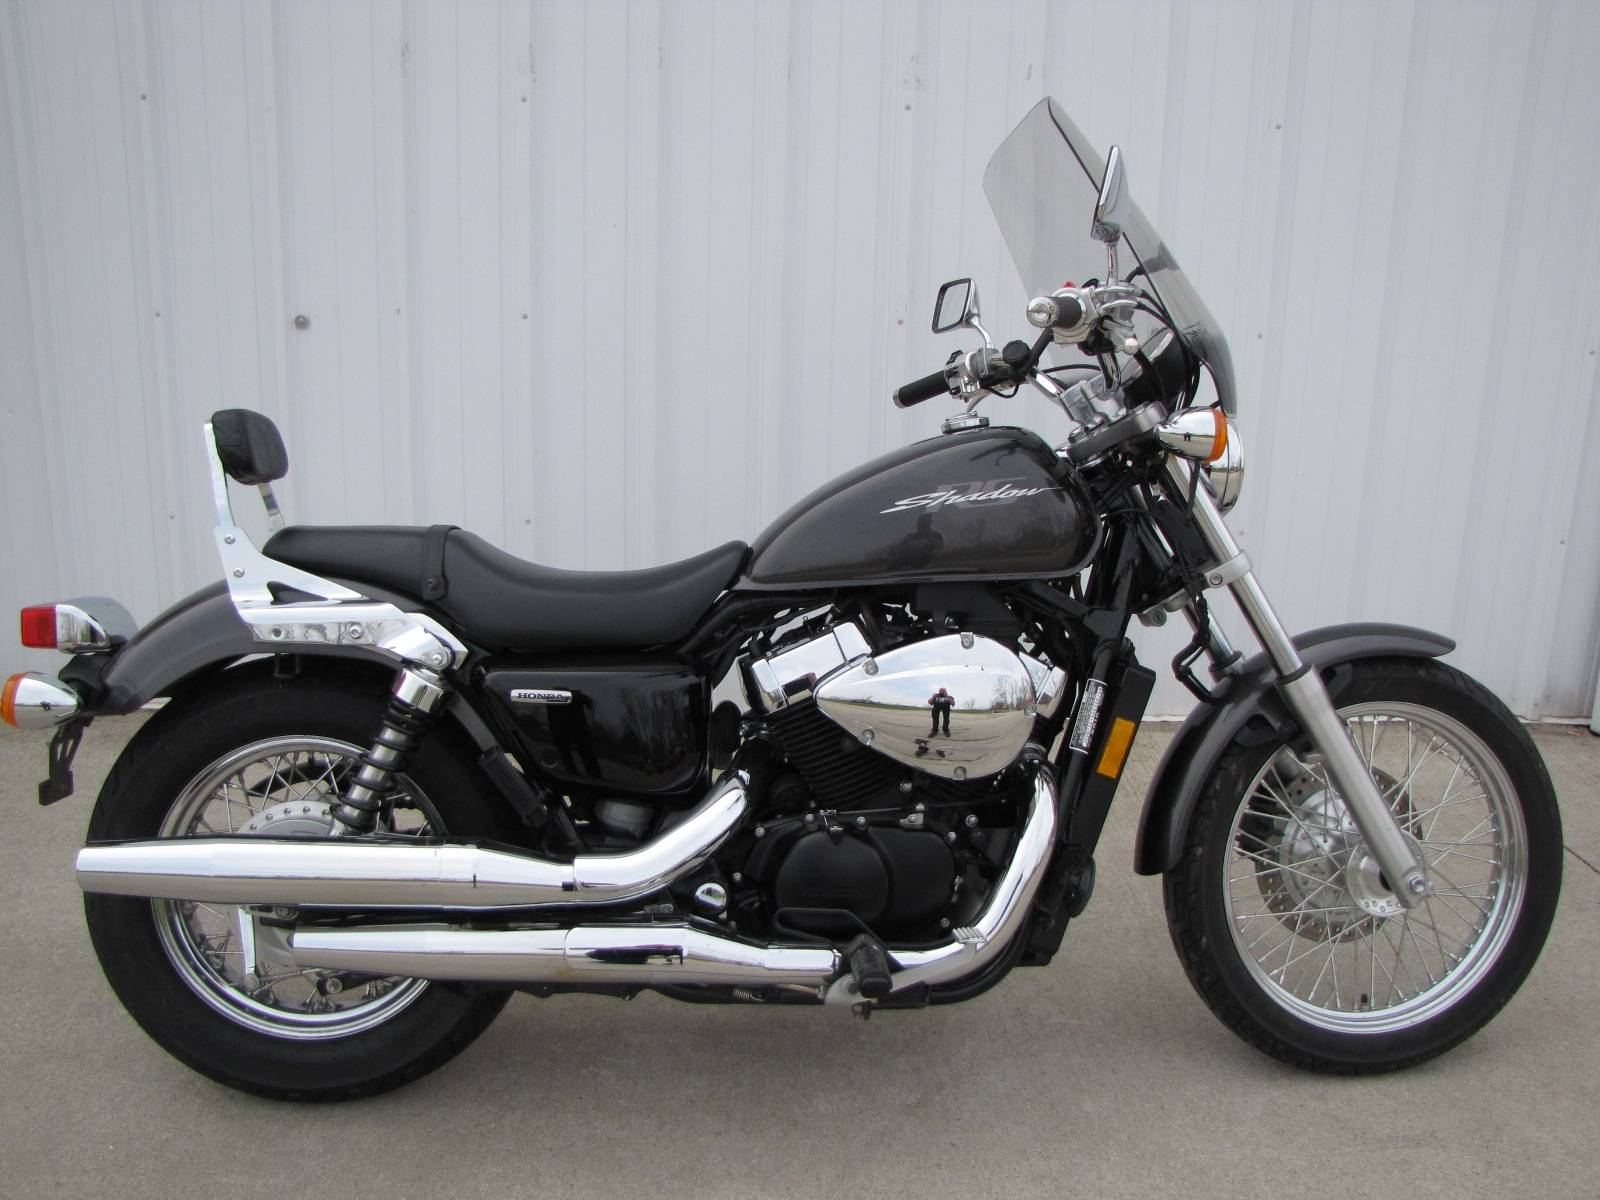 2010 Honda Shadow® RS in Ottawa, Ohio